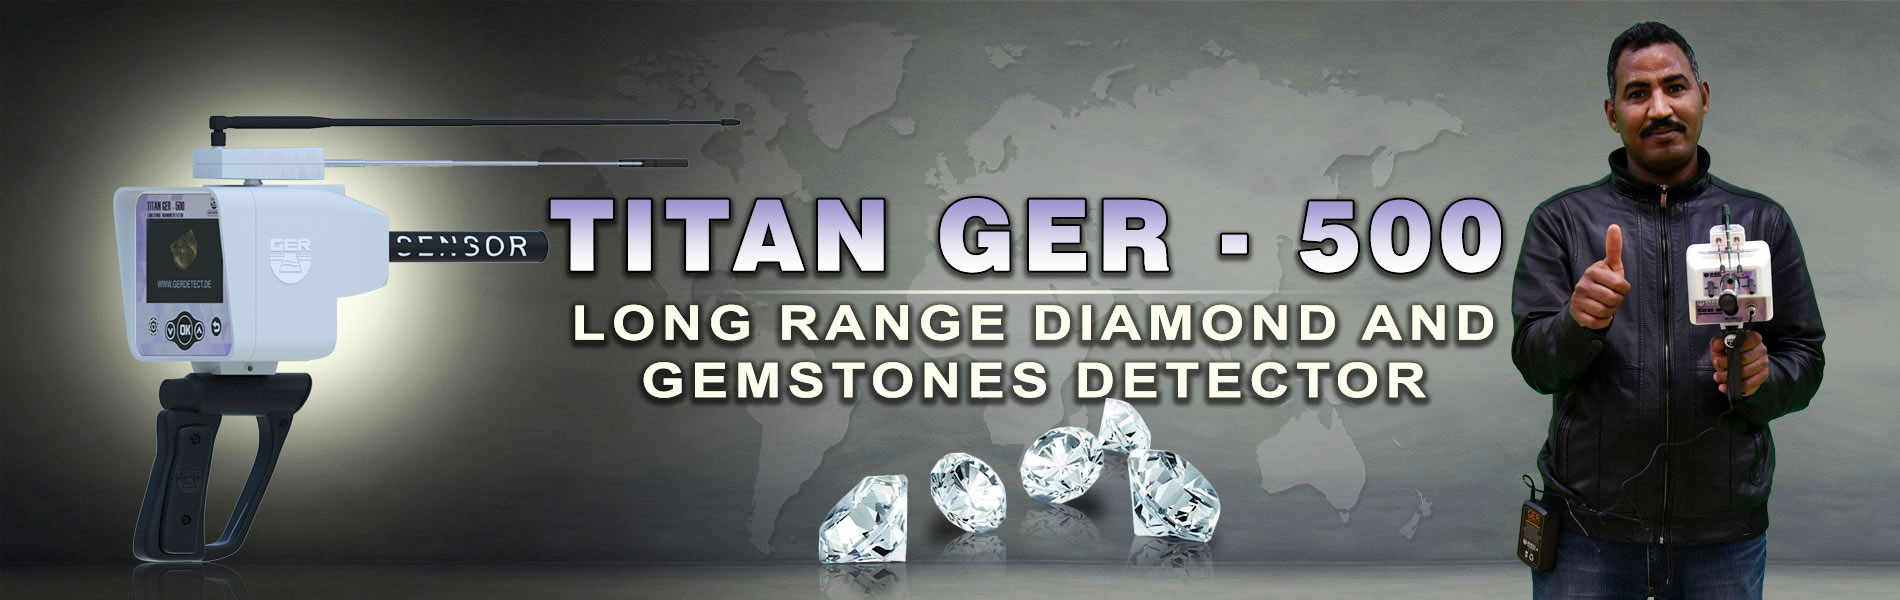 uig-detectors-customer-for-titan-ger-500